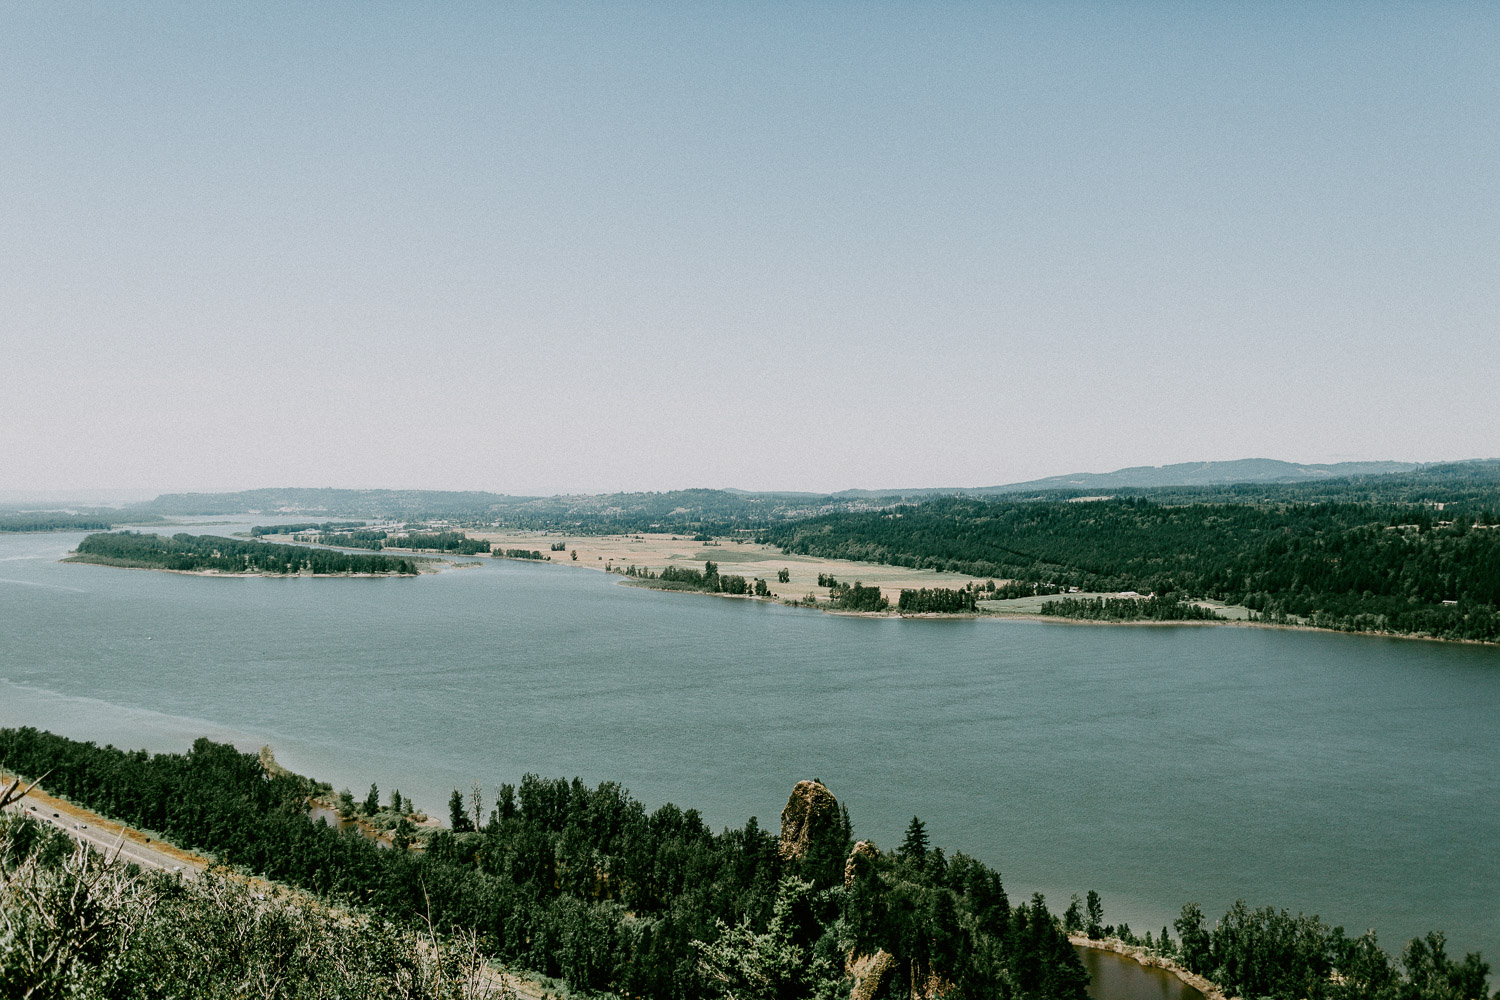 Image of Columbia River in Portland